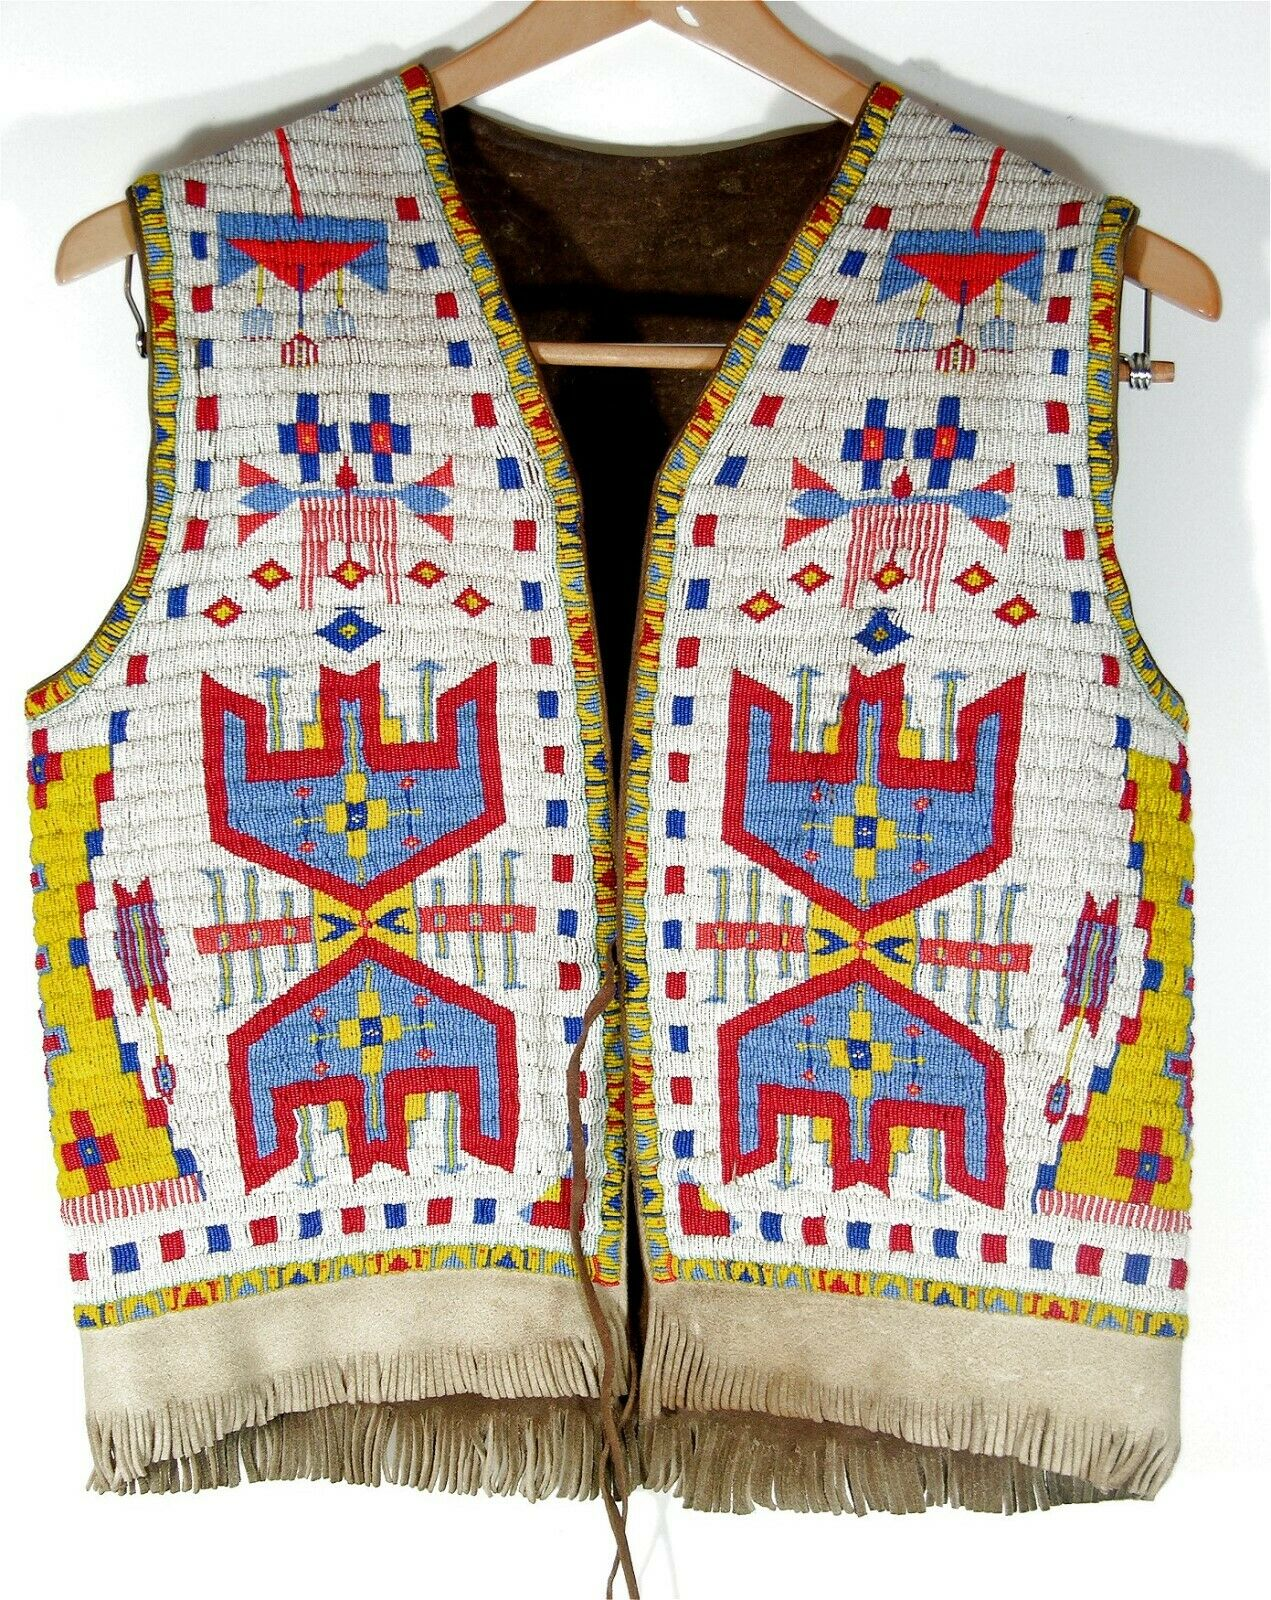 ca1940s NATIVE AMERICAN SIOUX INDIAN FULLY BEAD DECORATED HIDE VEST